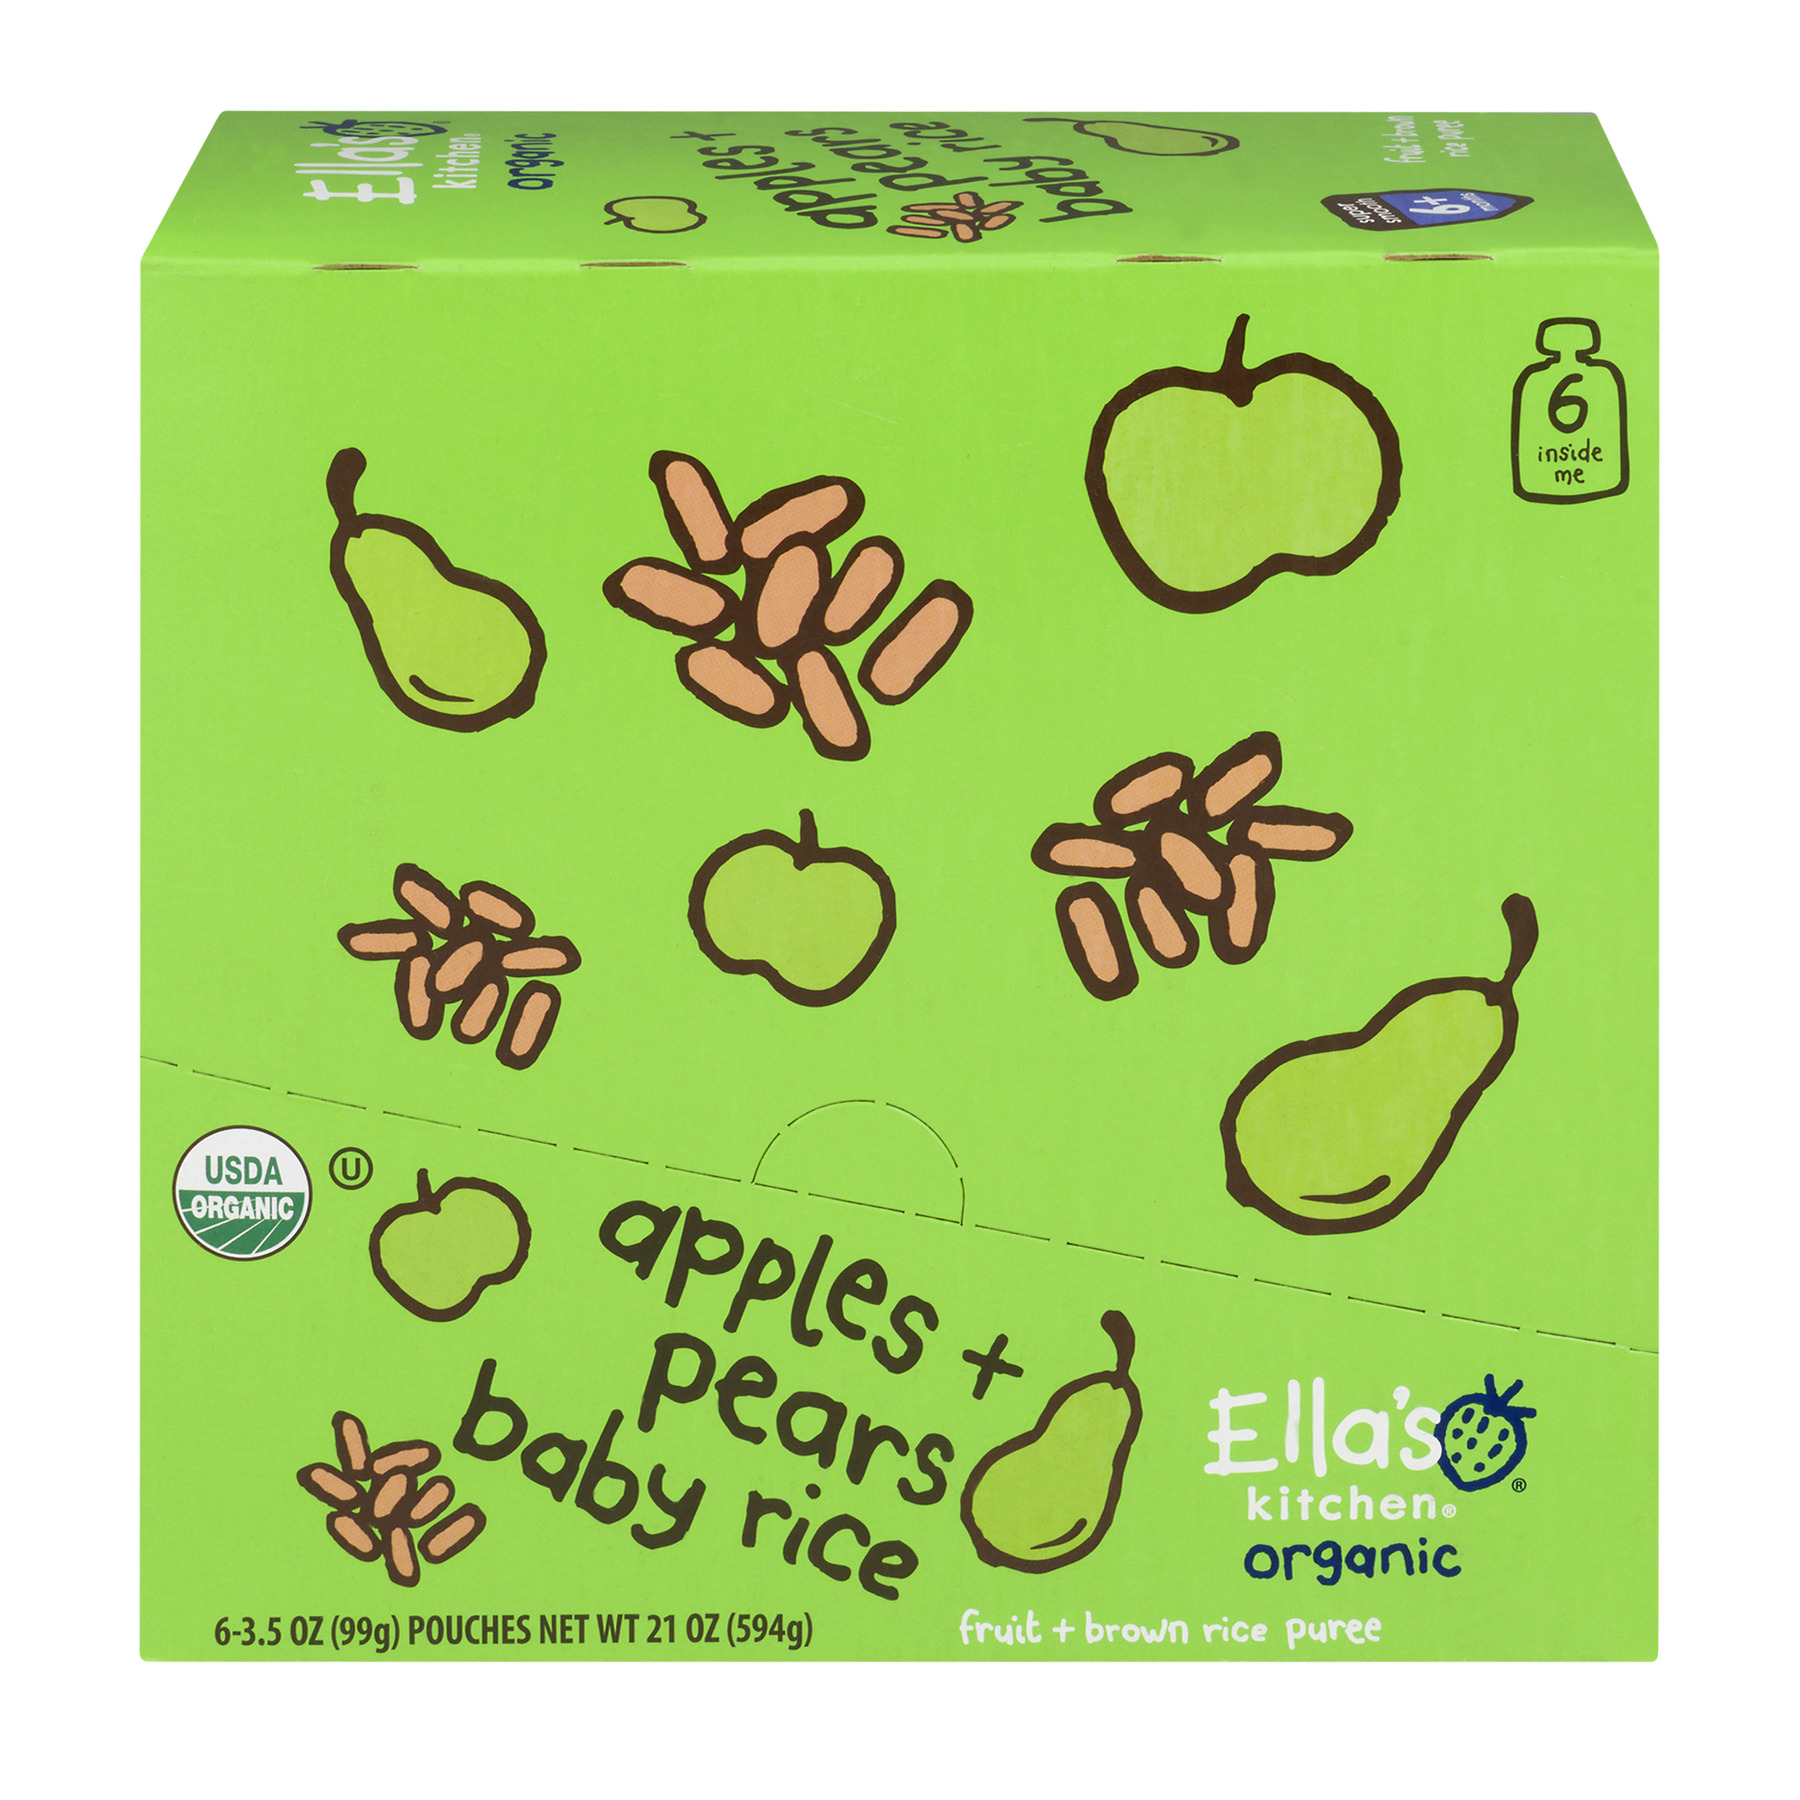 Ella's Kitchen 6+ Months Organic Baby Food, Pears Apples + Baby Rice, 3.5 oz. (Pack of 6)